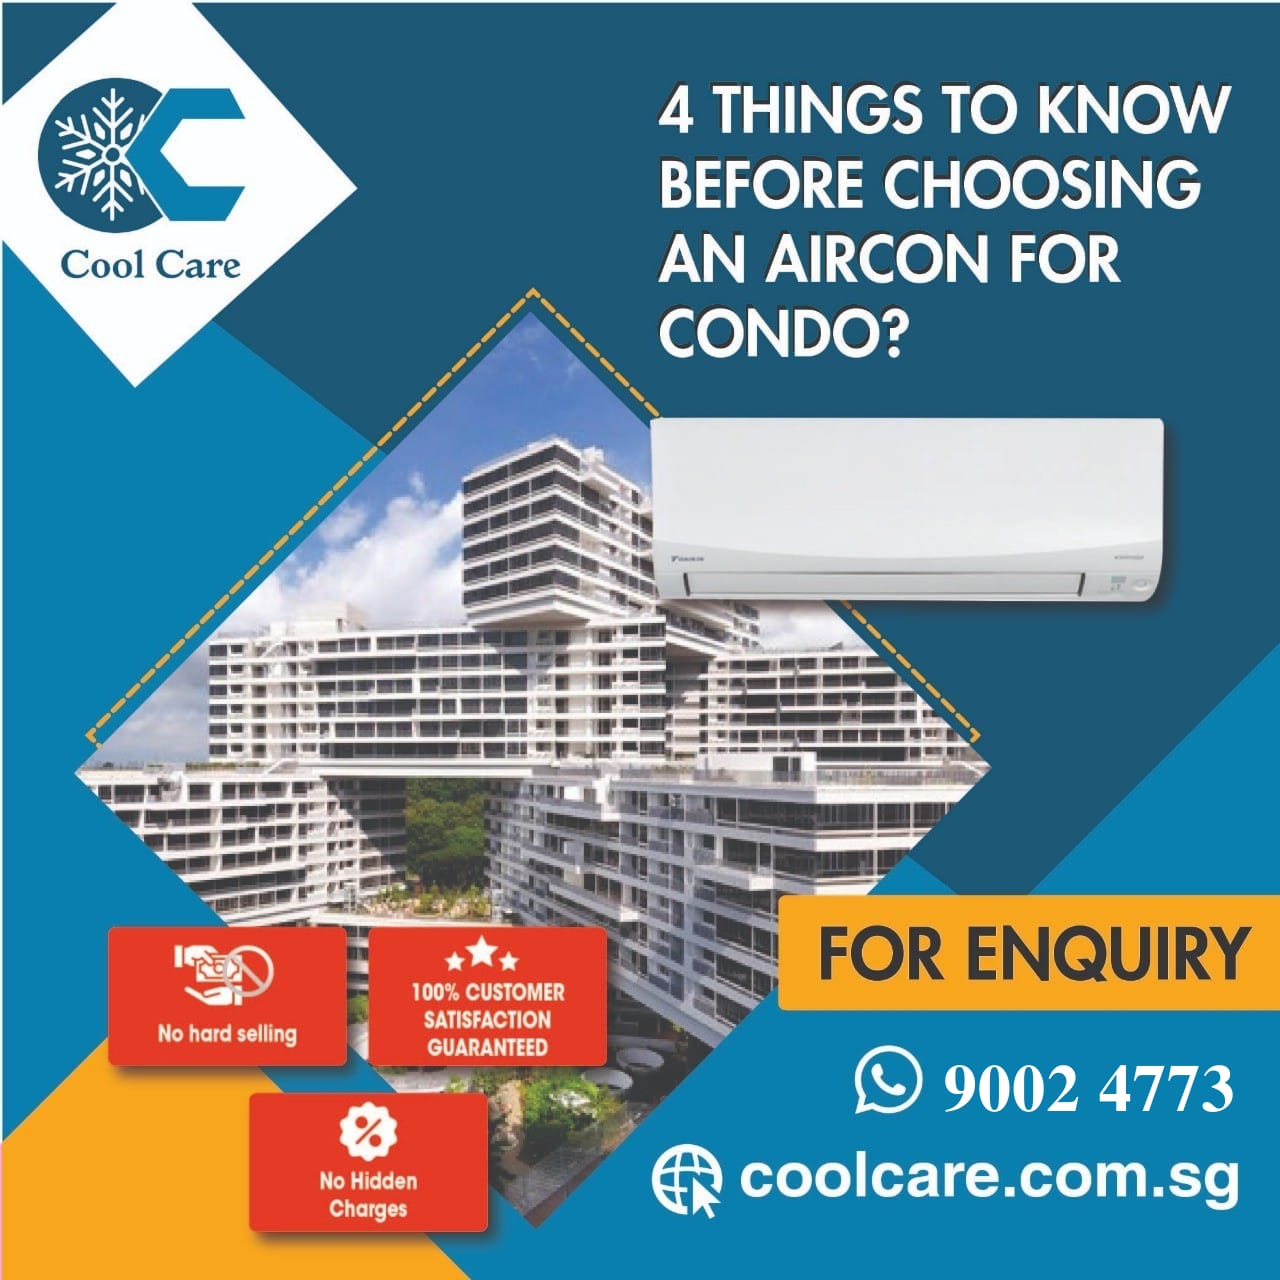 4 things to know before choosing an aircon for condo?